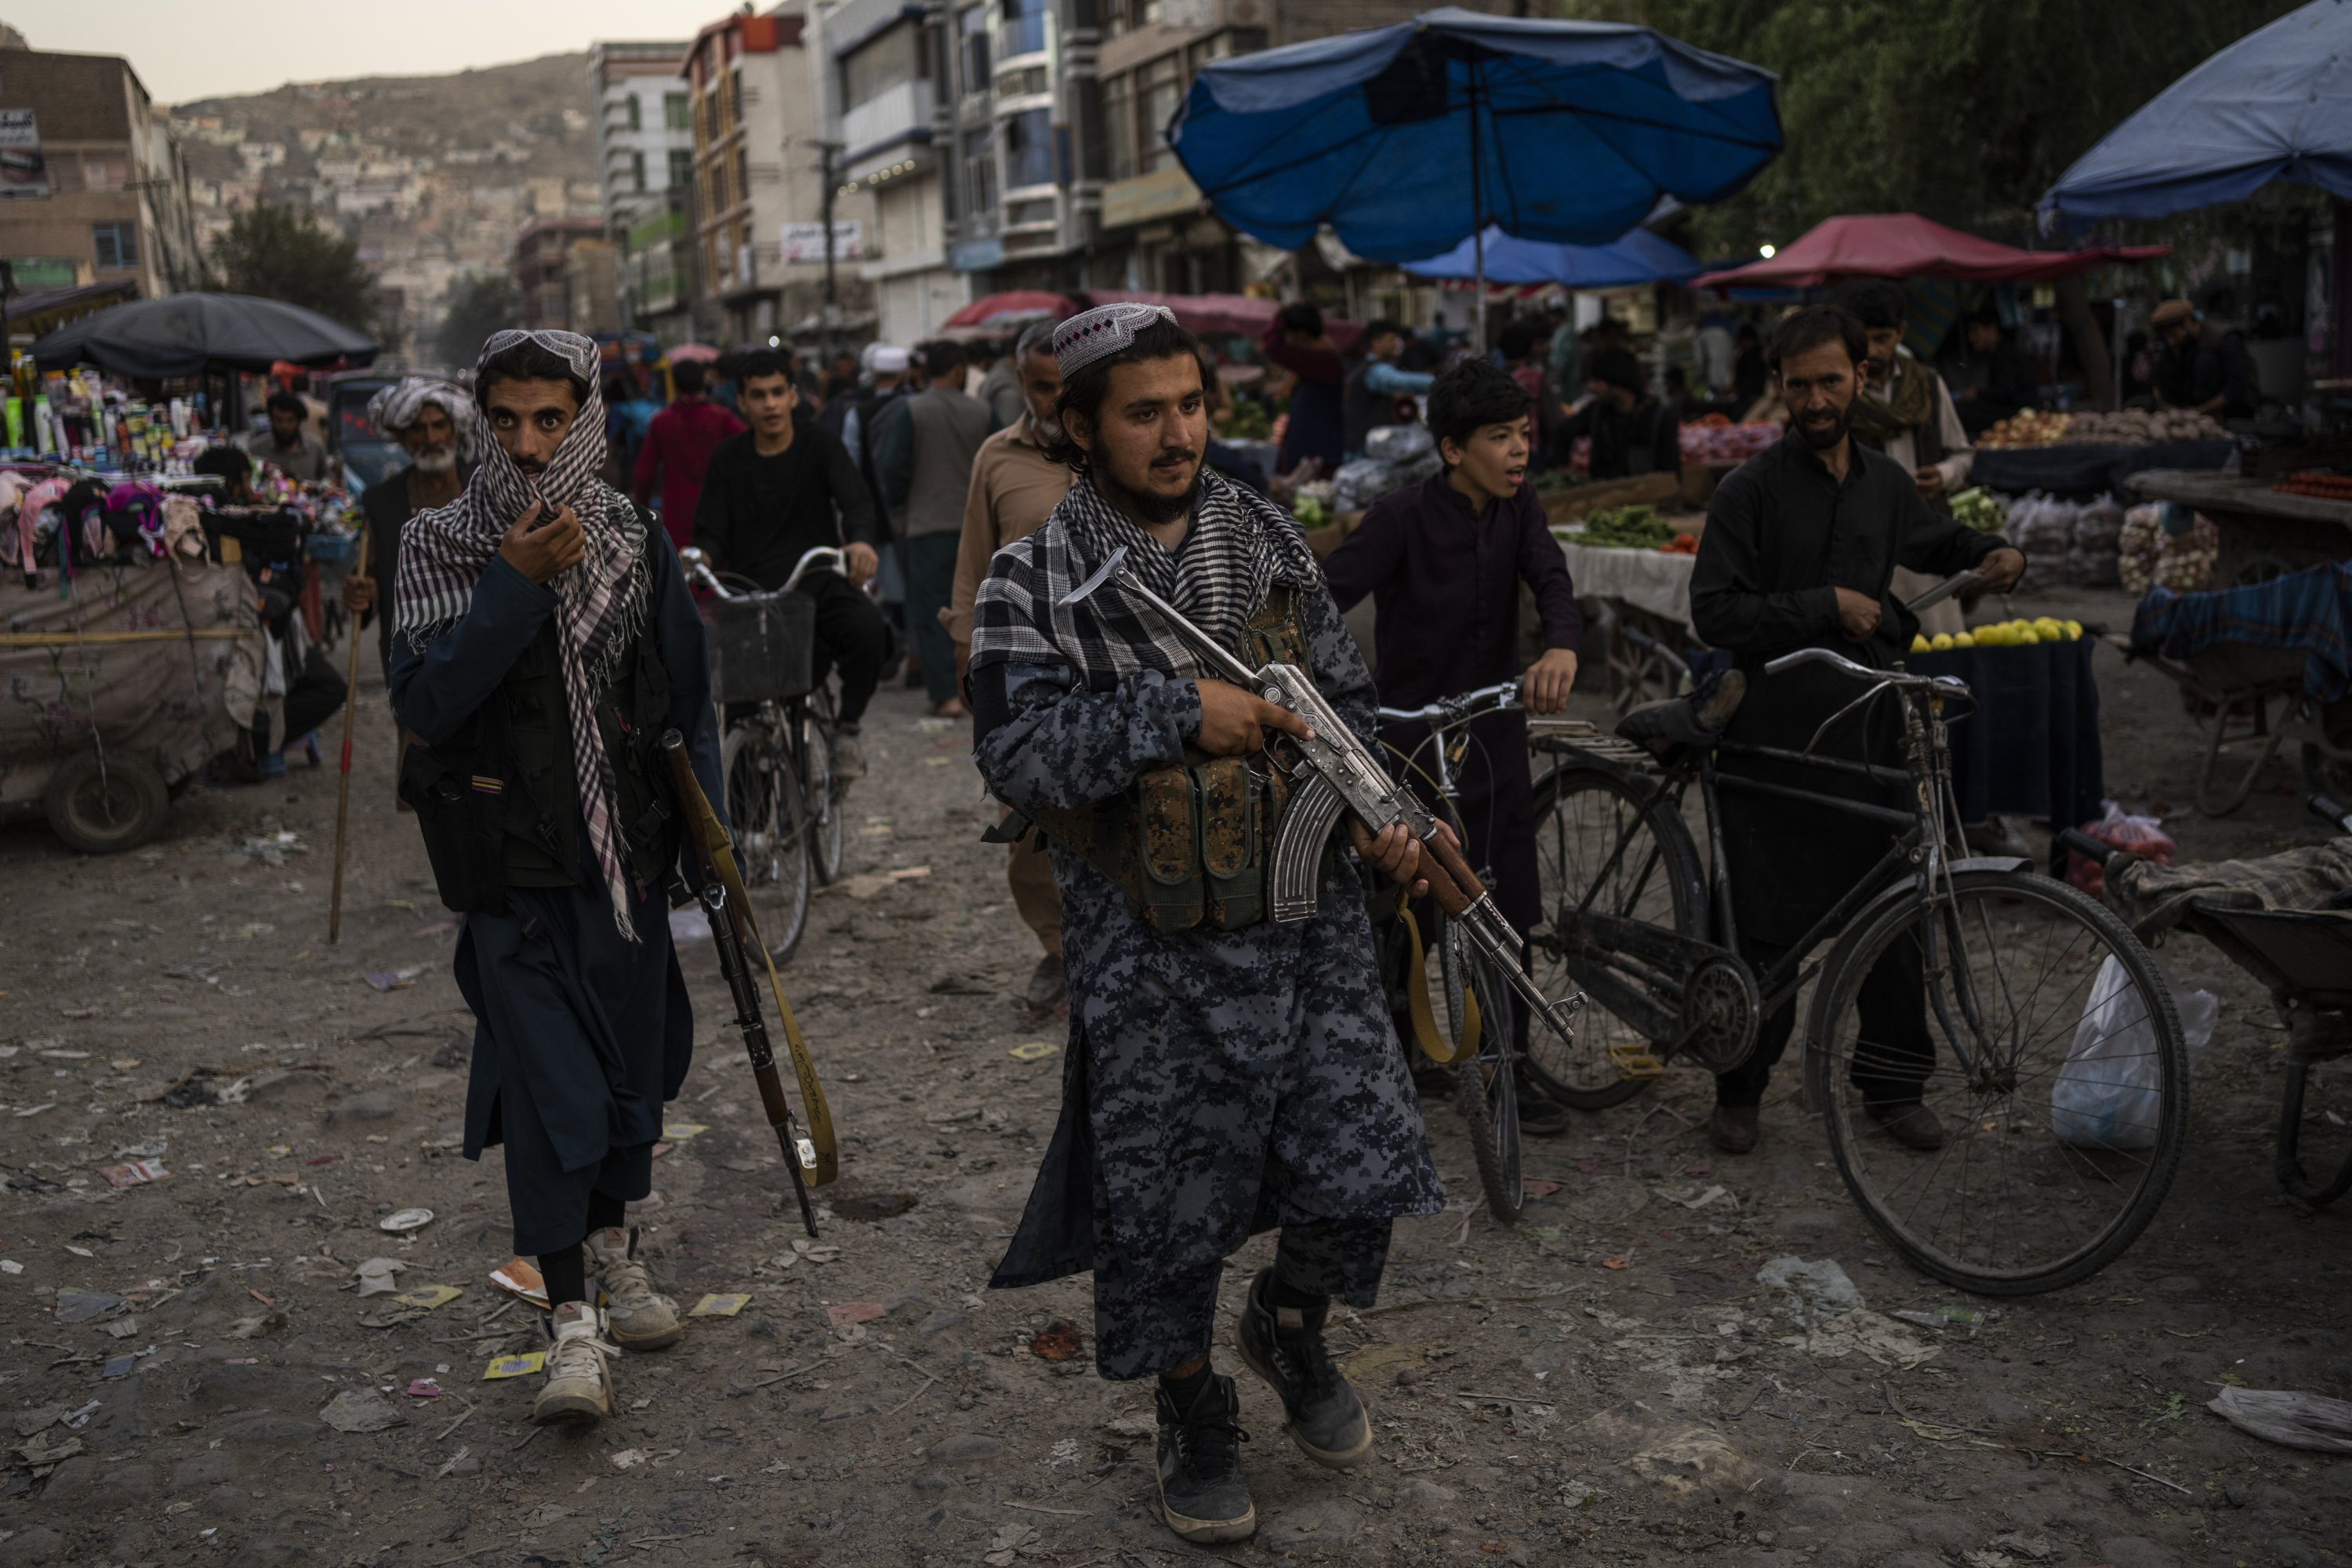 Taliban fighters patrol a market in Kabul, Afghanistan, Sept. 14, 2021. (AP Photo)